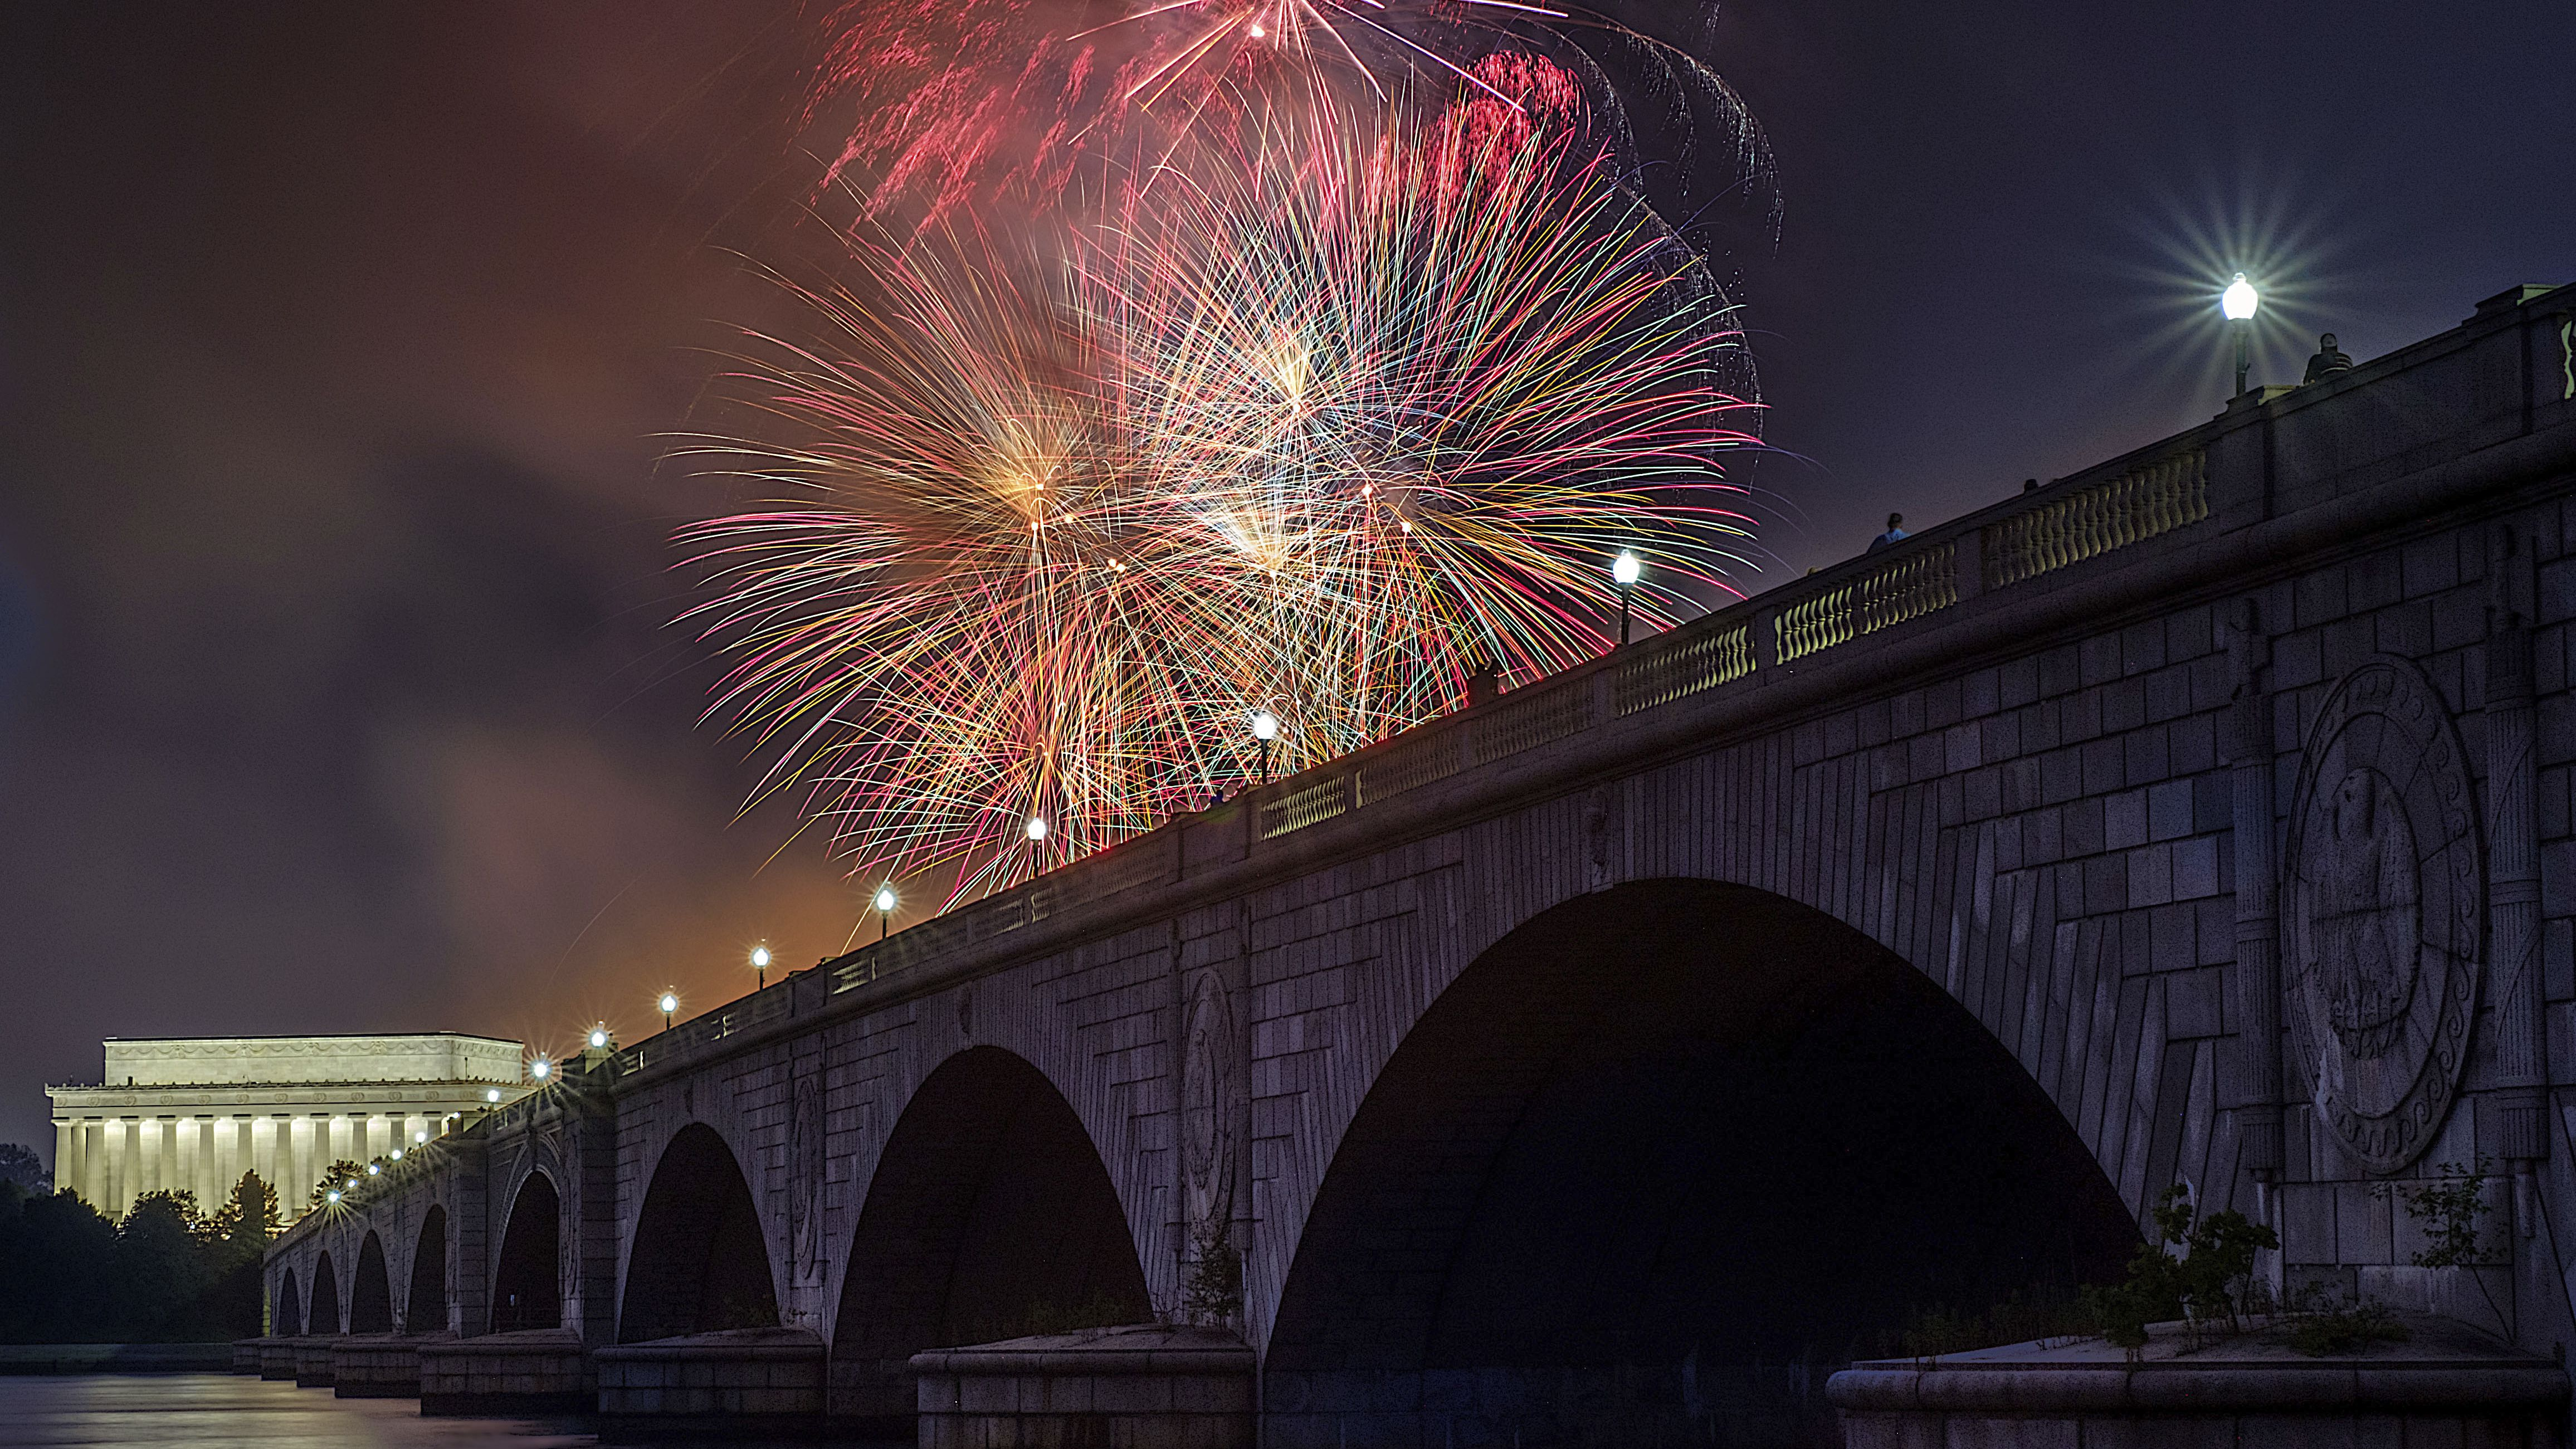 Fireworks burst over the Memorial Bridge and Lincoln Memorial during Independence Day celebrations on the National Mall in Washington, Tuesday, July 4, 2017.